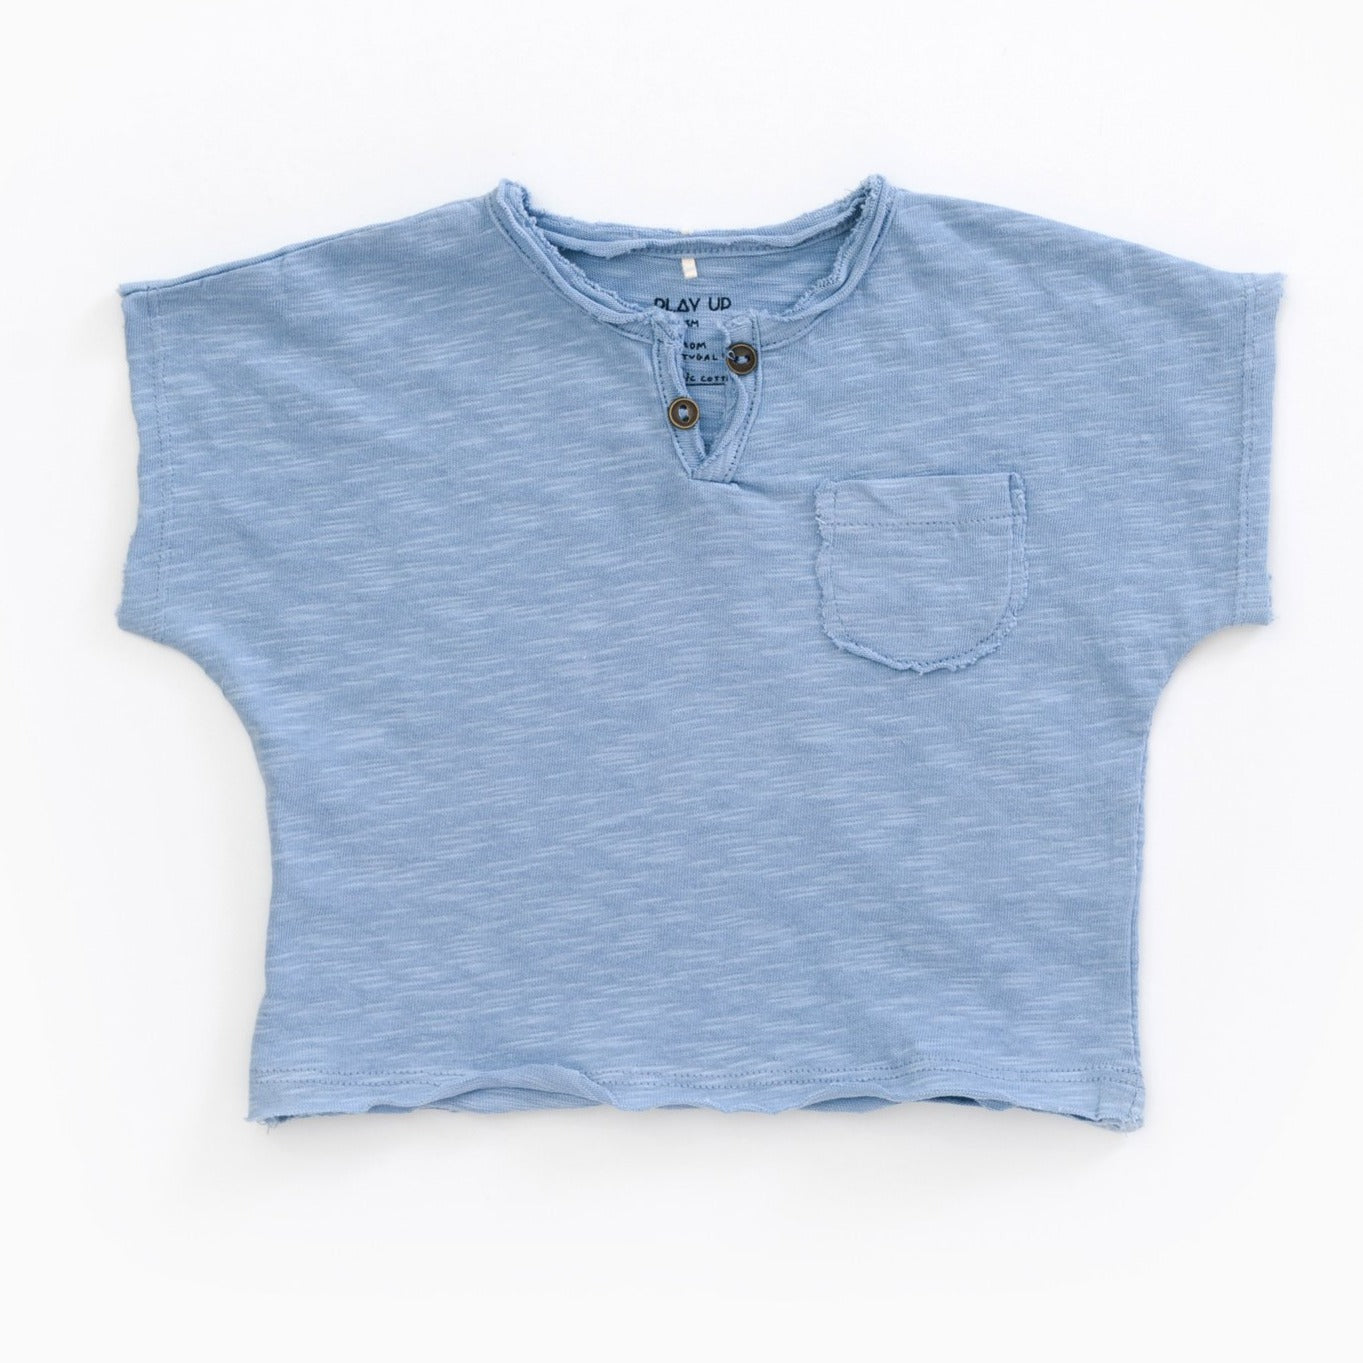 PLAY UP T-Shirt Jersey  kurzarm Organic Cotton